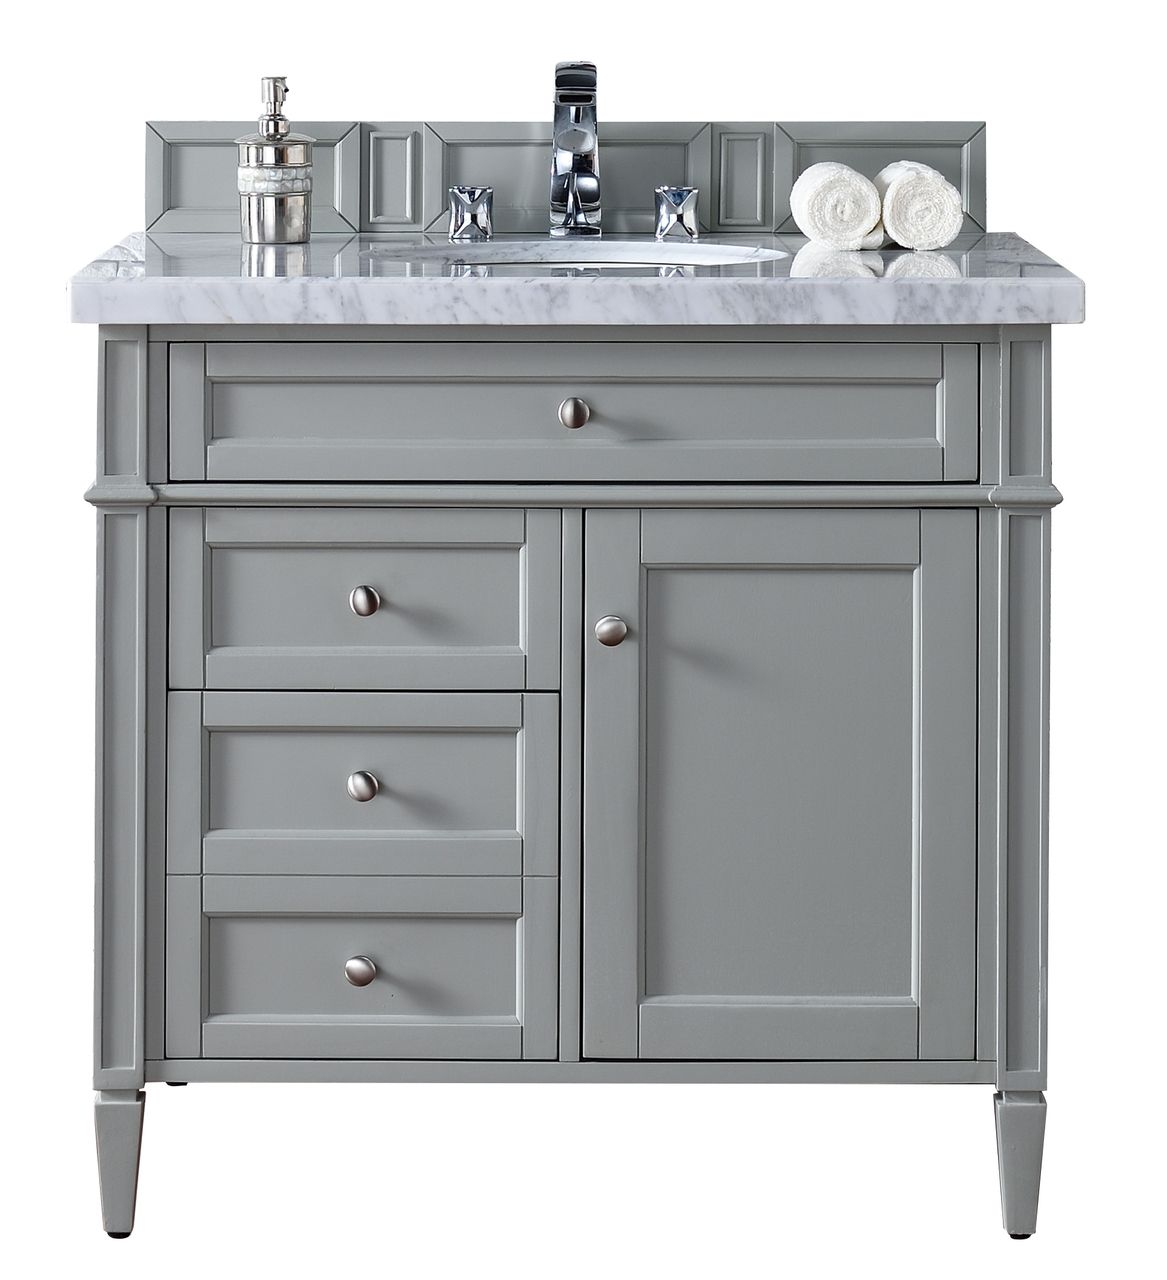 Contemporary 36 Inch Single Bathroom Vanity Gray Finish